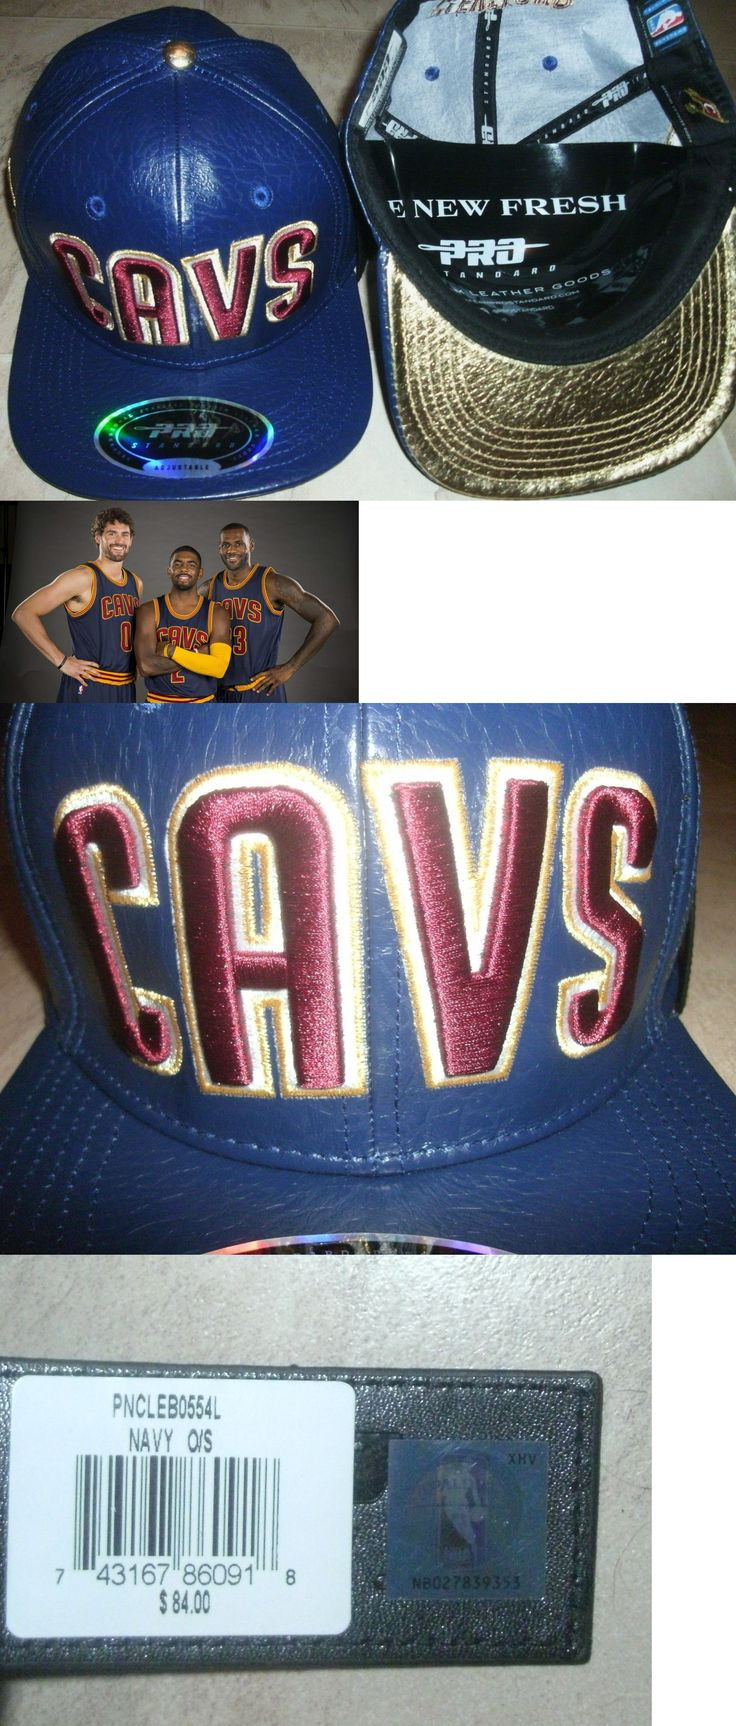 Hats and Headwear 158968: $100 Cleveland Cavaliers Leather Hat Cavs Nba Jersey-Clr Lebron Kyrie M L Xl Xxl -> BUY IT NOW ONLY: $59.23 on eBay!